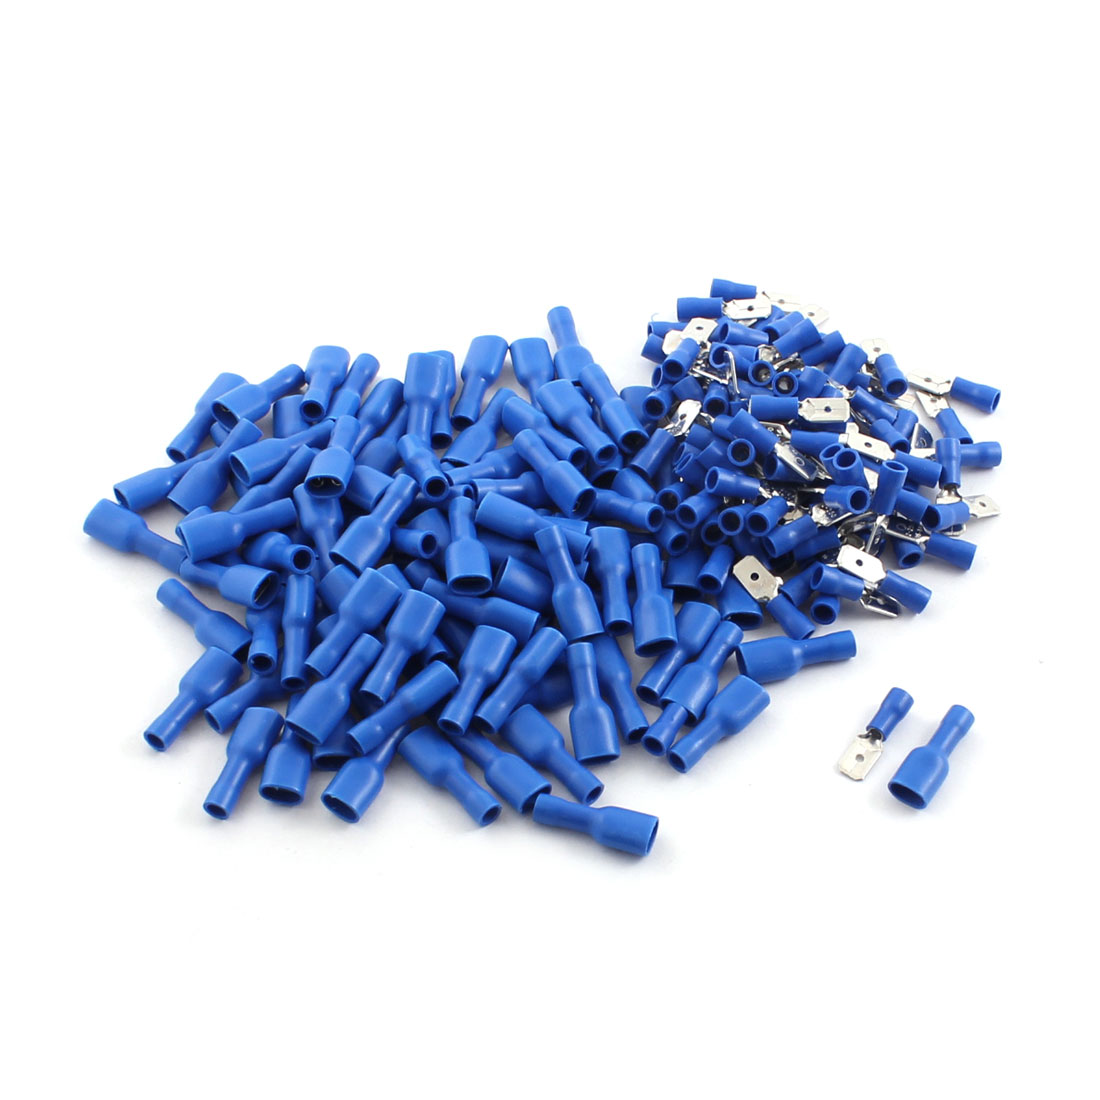 200Pcs AWG 16-14 Wire Insulated Male Female Spade Crimp Terminal Connectors Blue